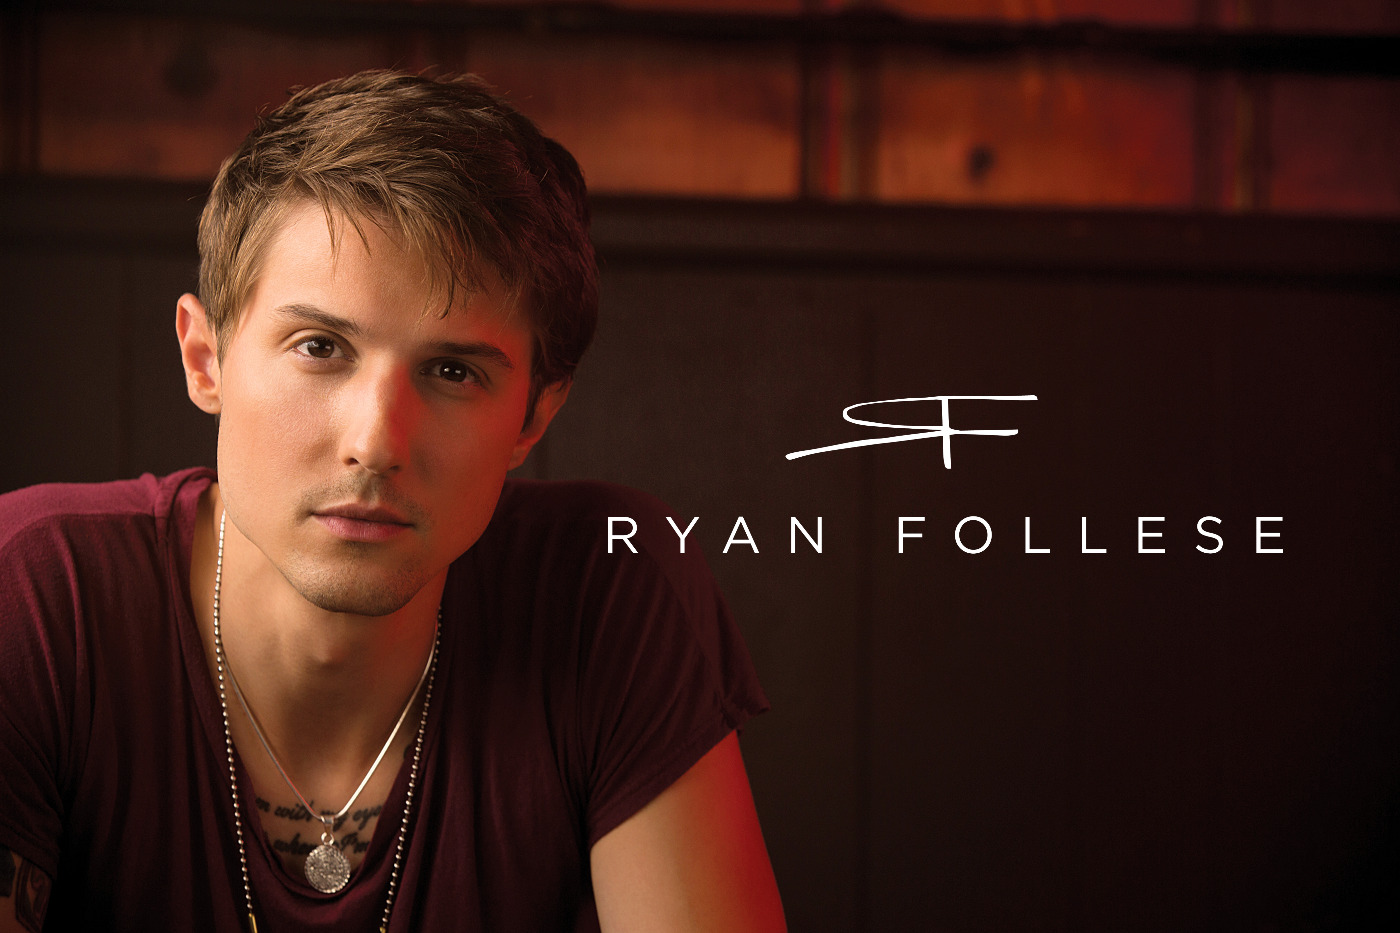 Ryan-Follese-Yachtstock-Headliner-2018